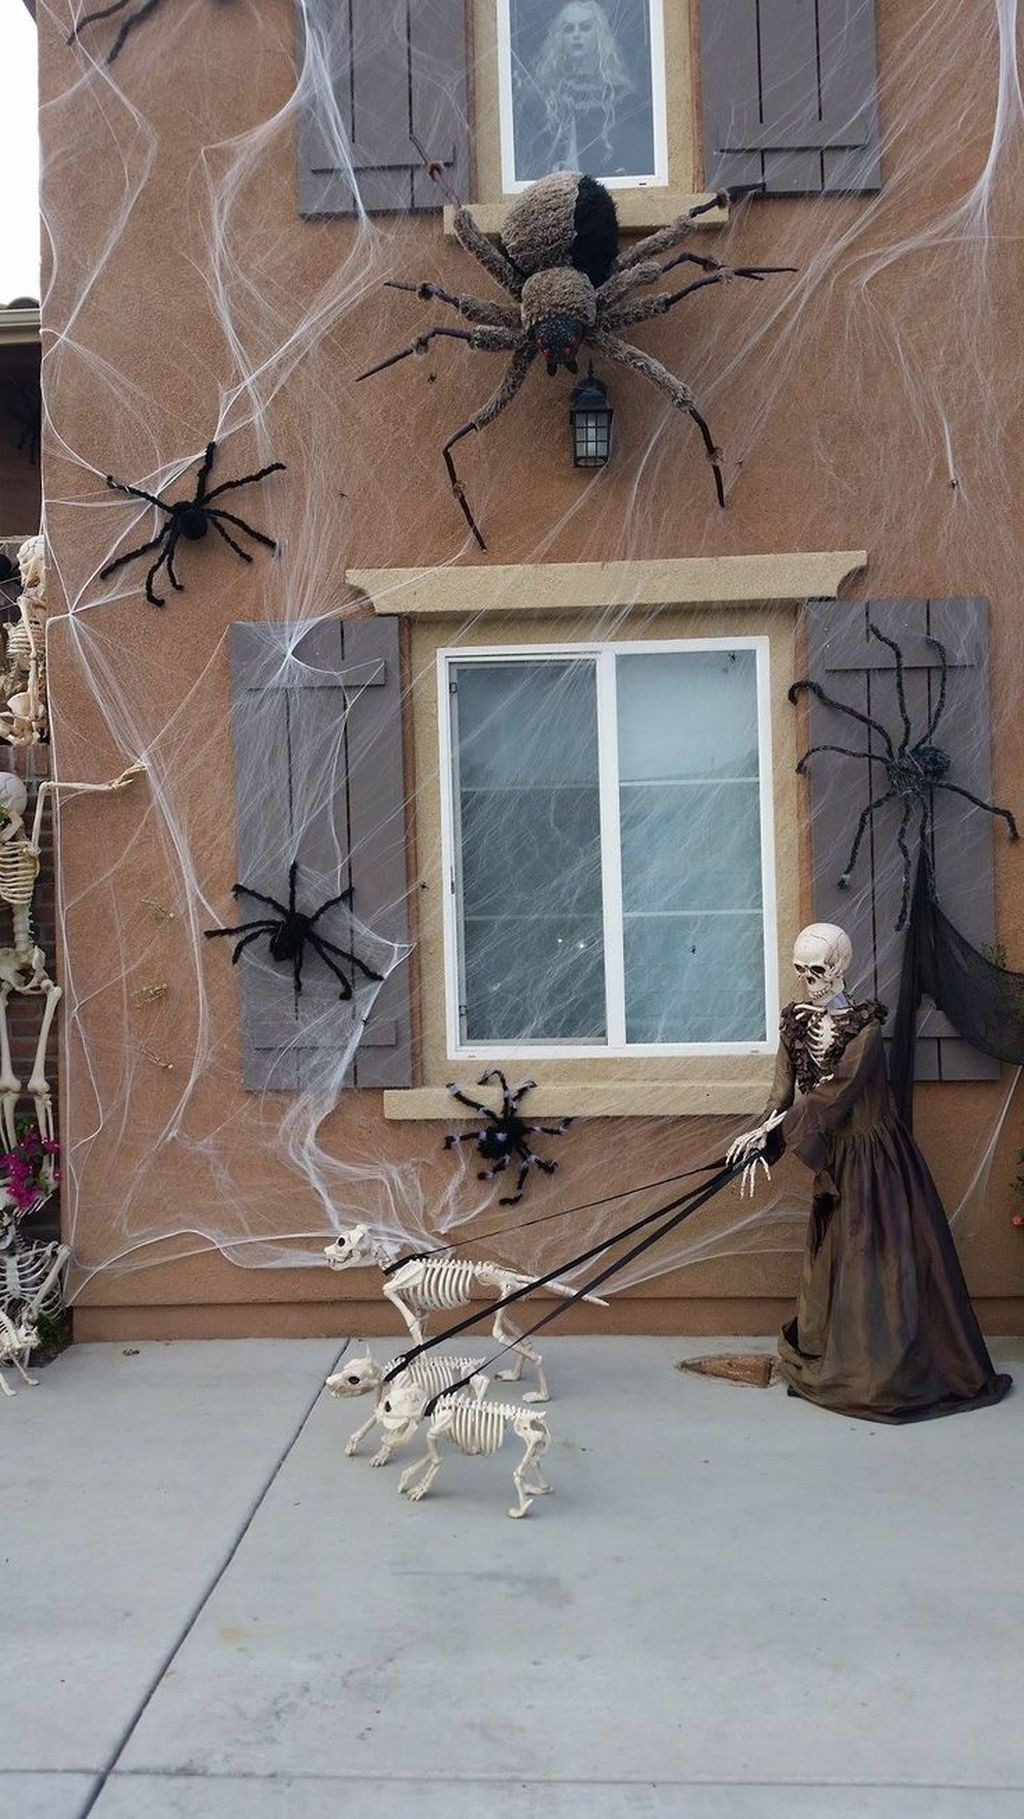 76 Scary but Creative DIY Halloween Window Decorations Ideas You - Scary Door Decorations For Halloween